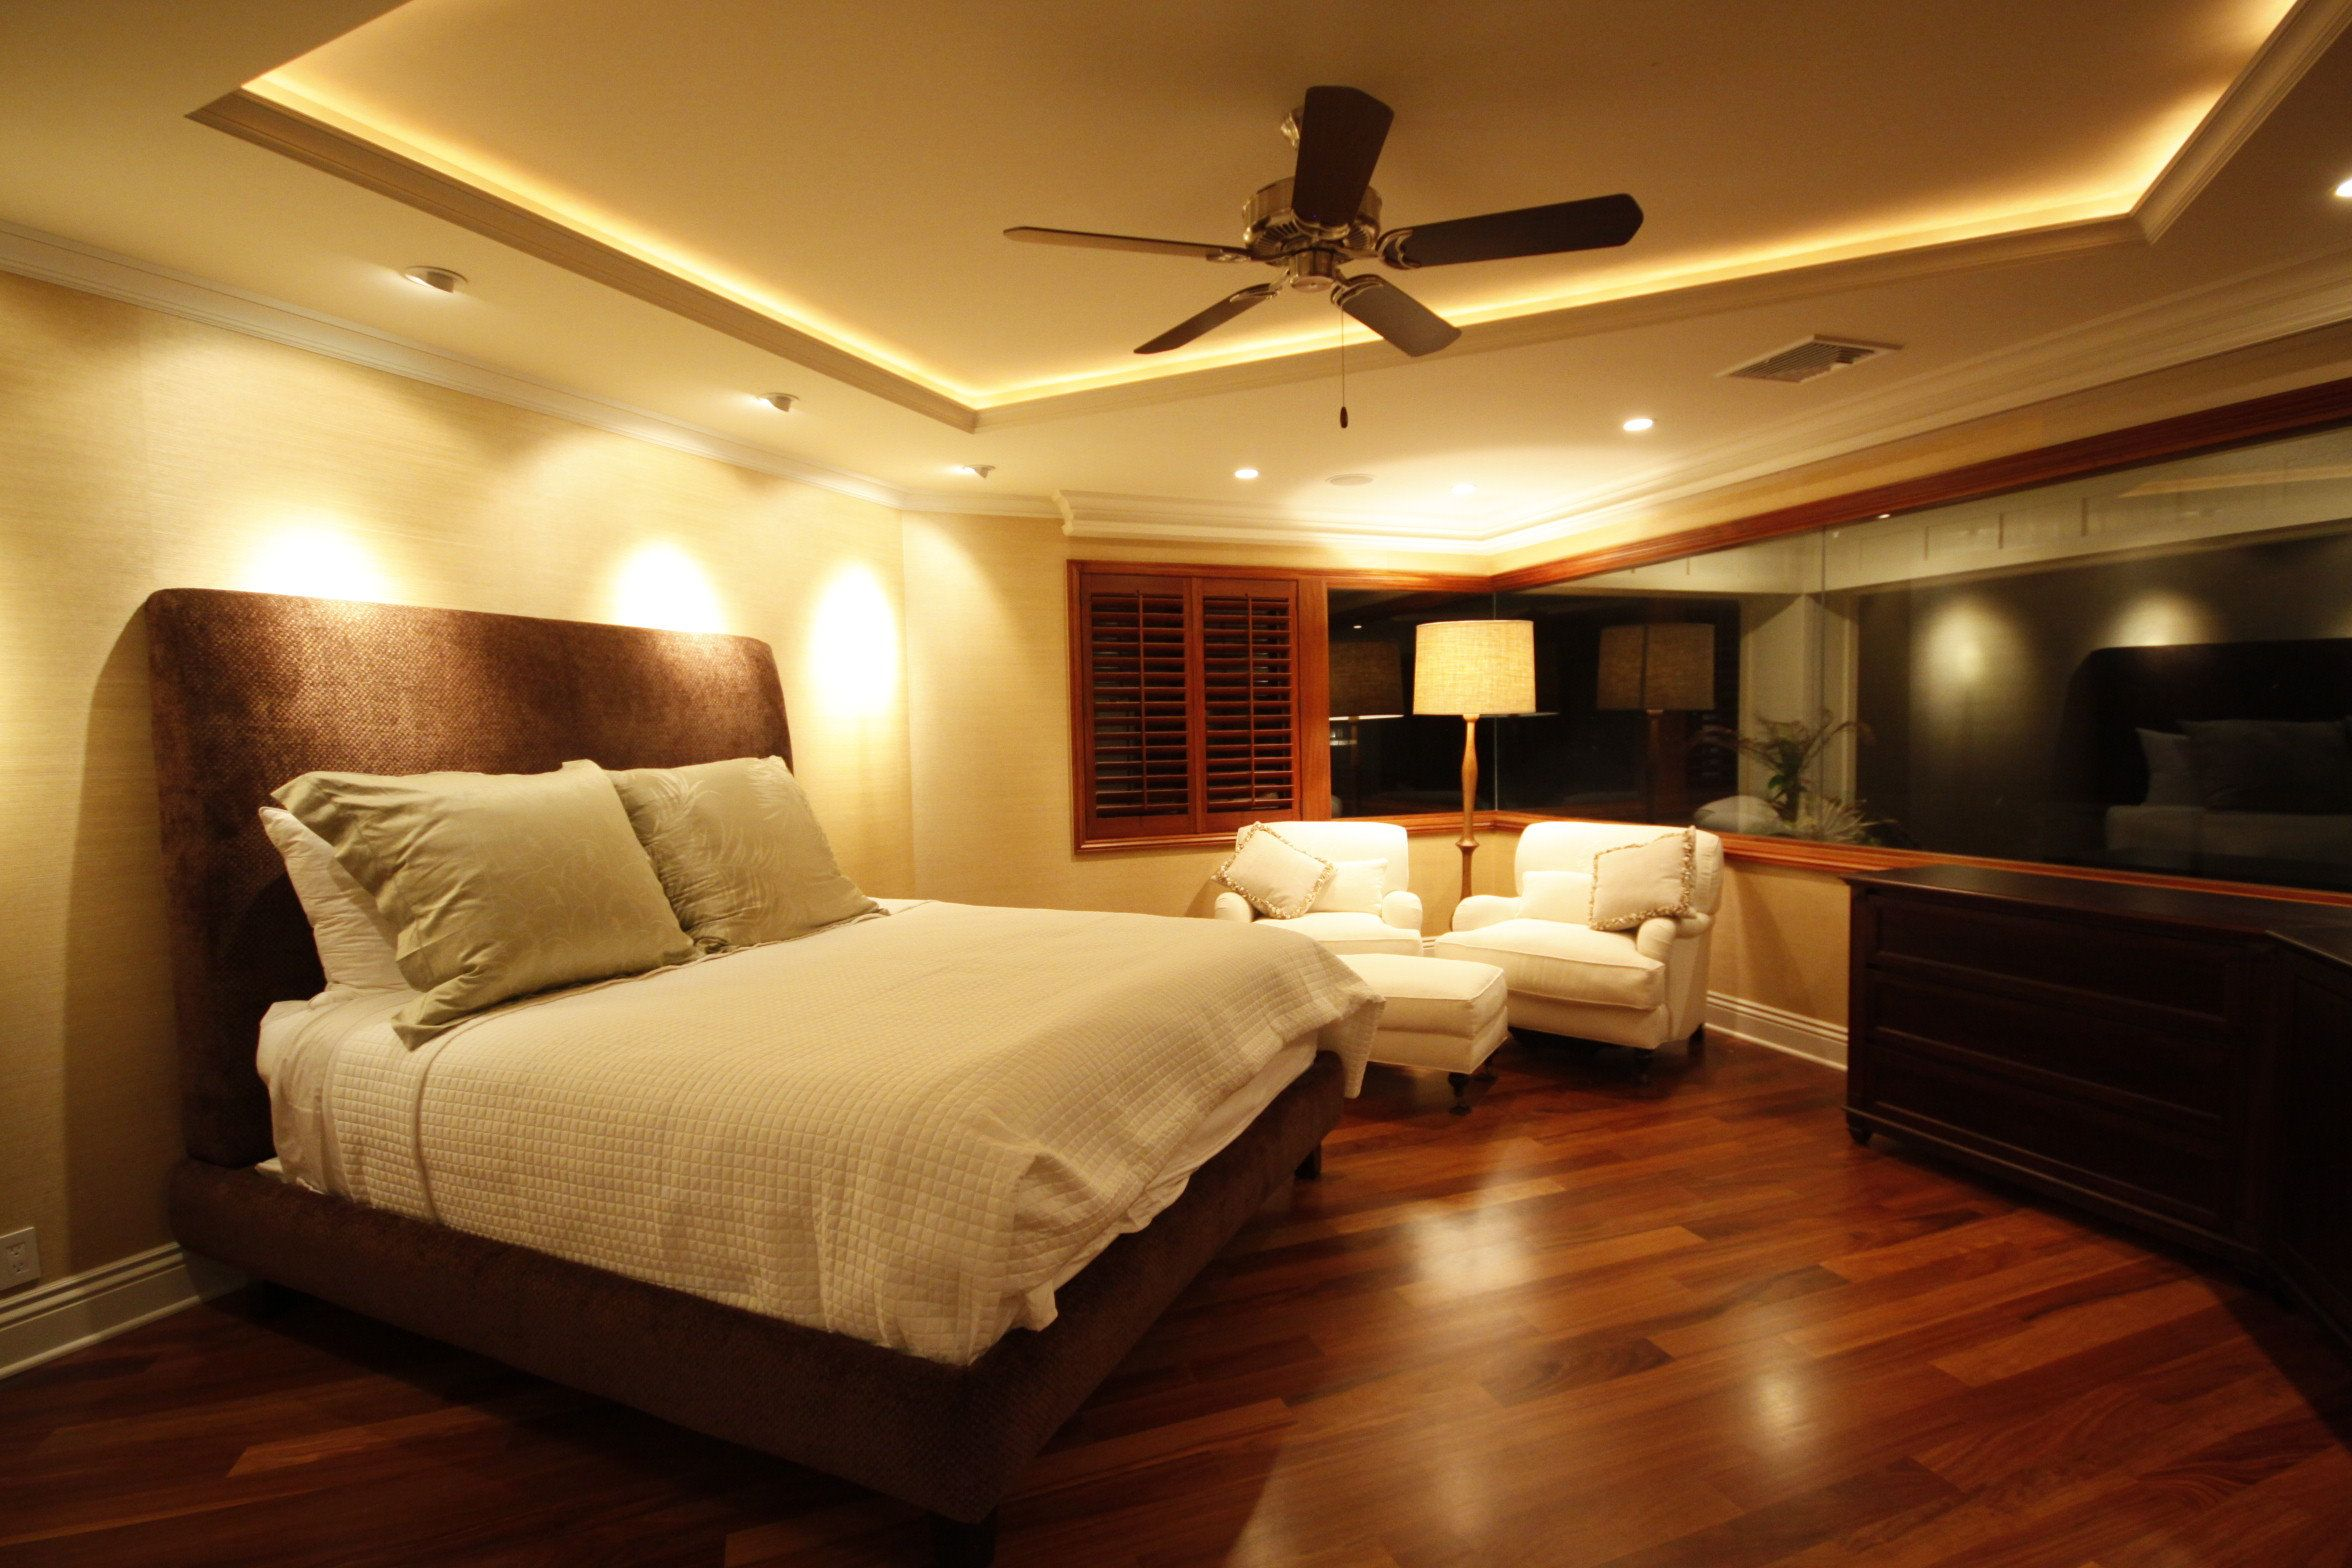 Pictures Of Master Bedrooms appealing master bedroom modern decor with wooden floors also